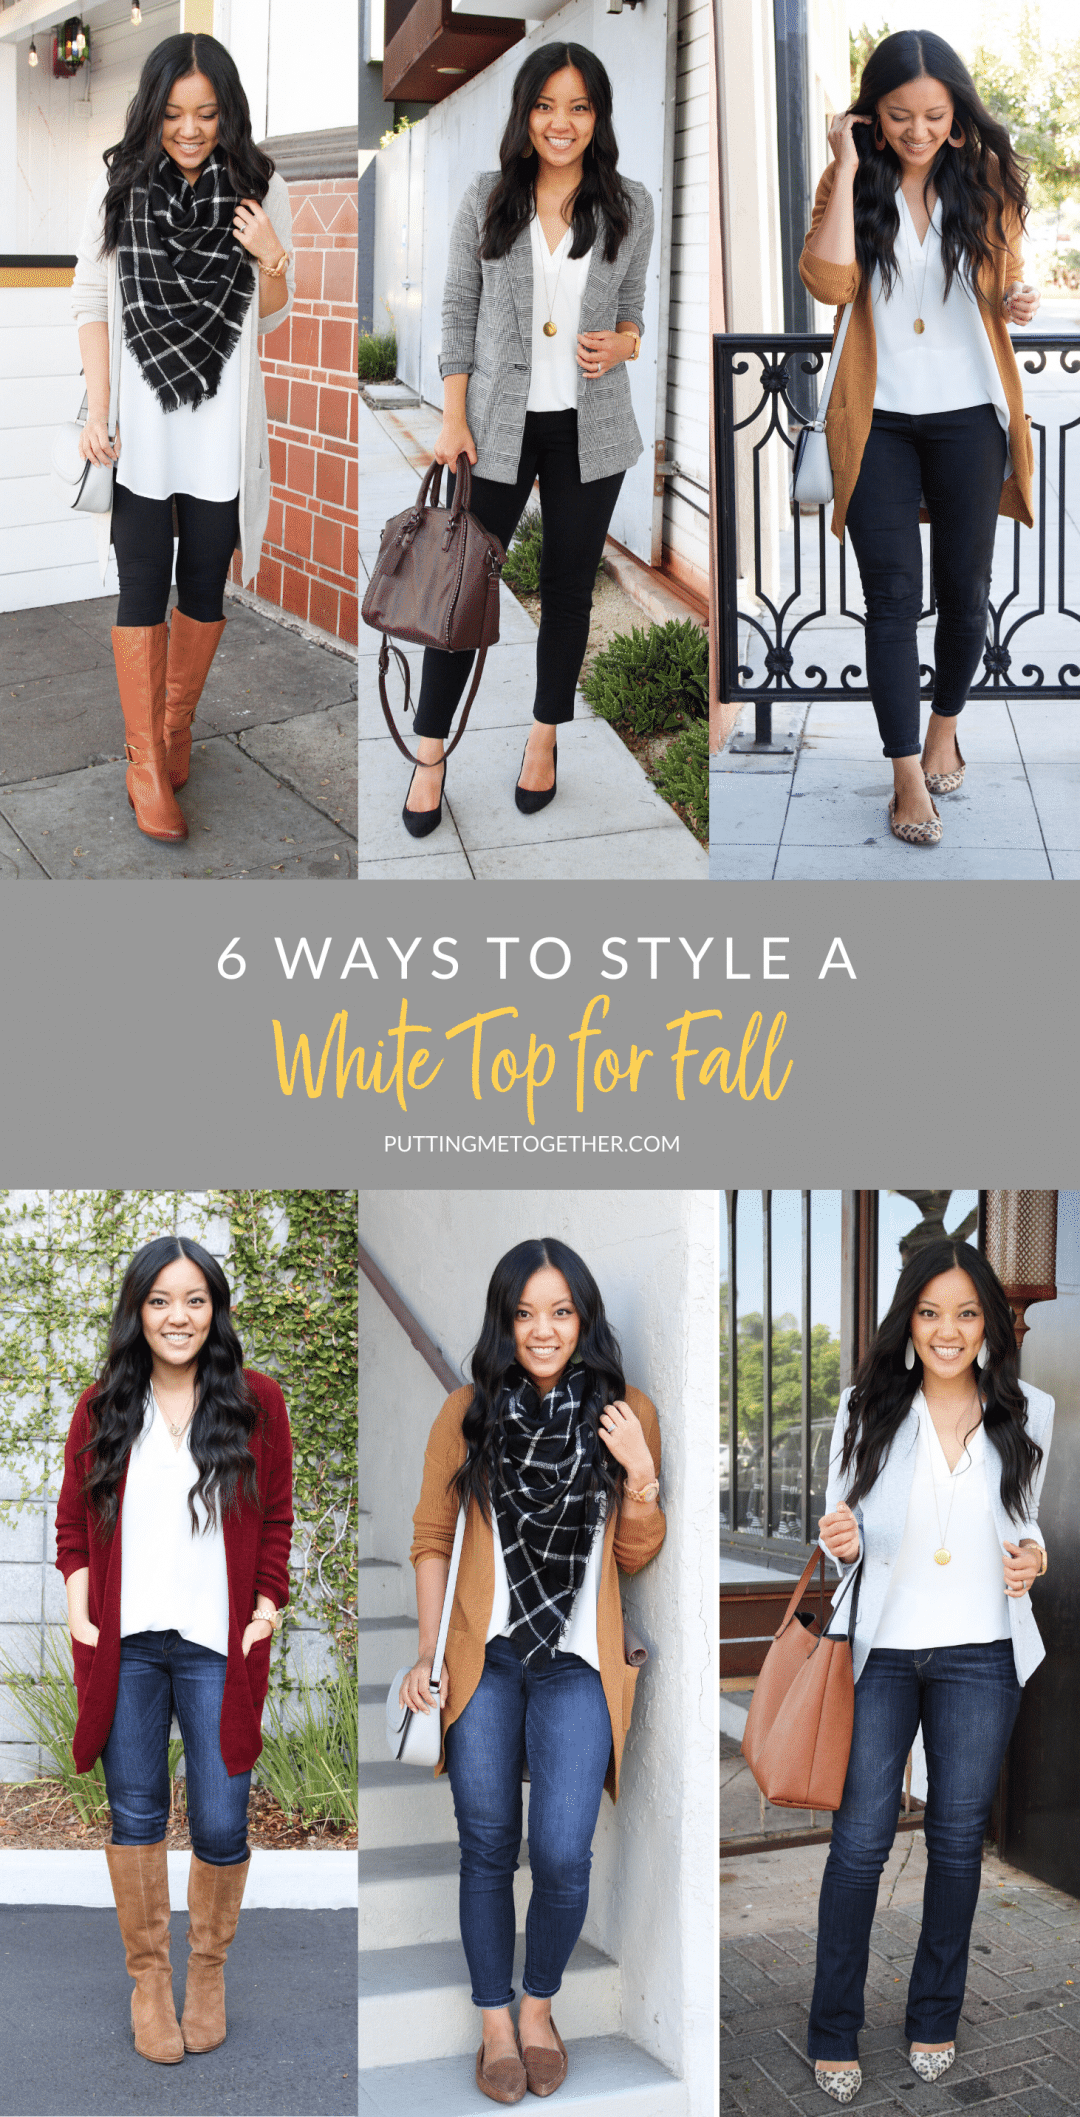 6 Ways to Style a White Top for Fall